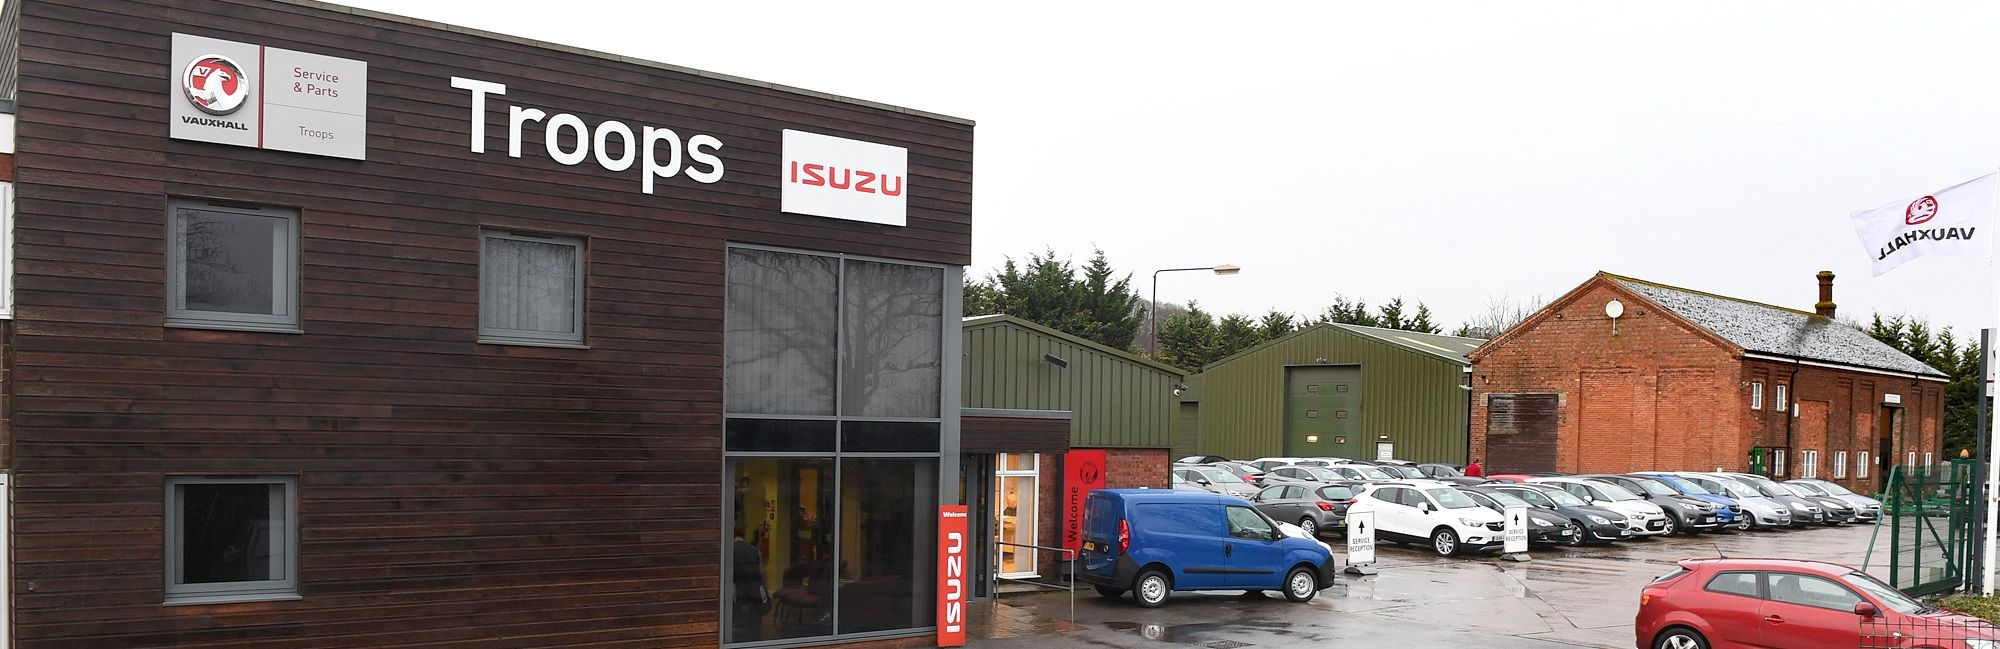 Troops in Leadenham, Used Cars Lincolnshire